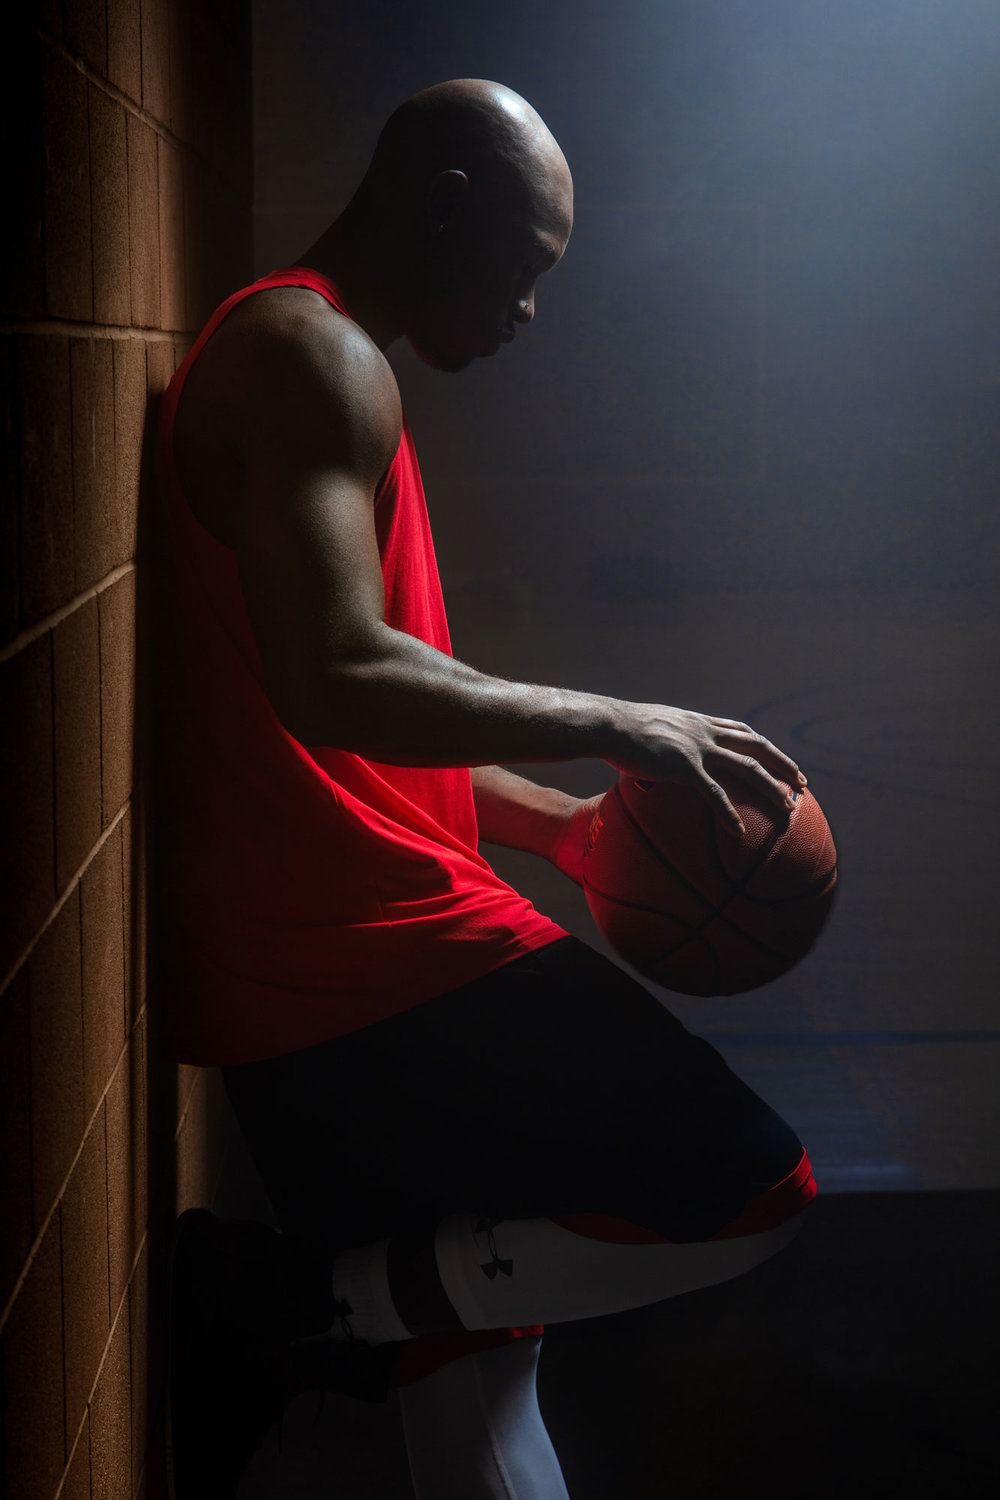 241-2018-07-03-Tyler-Basketball-Edit.jpg